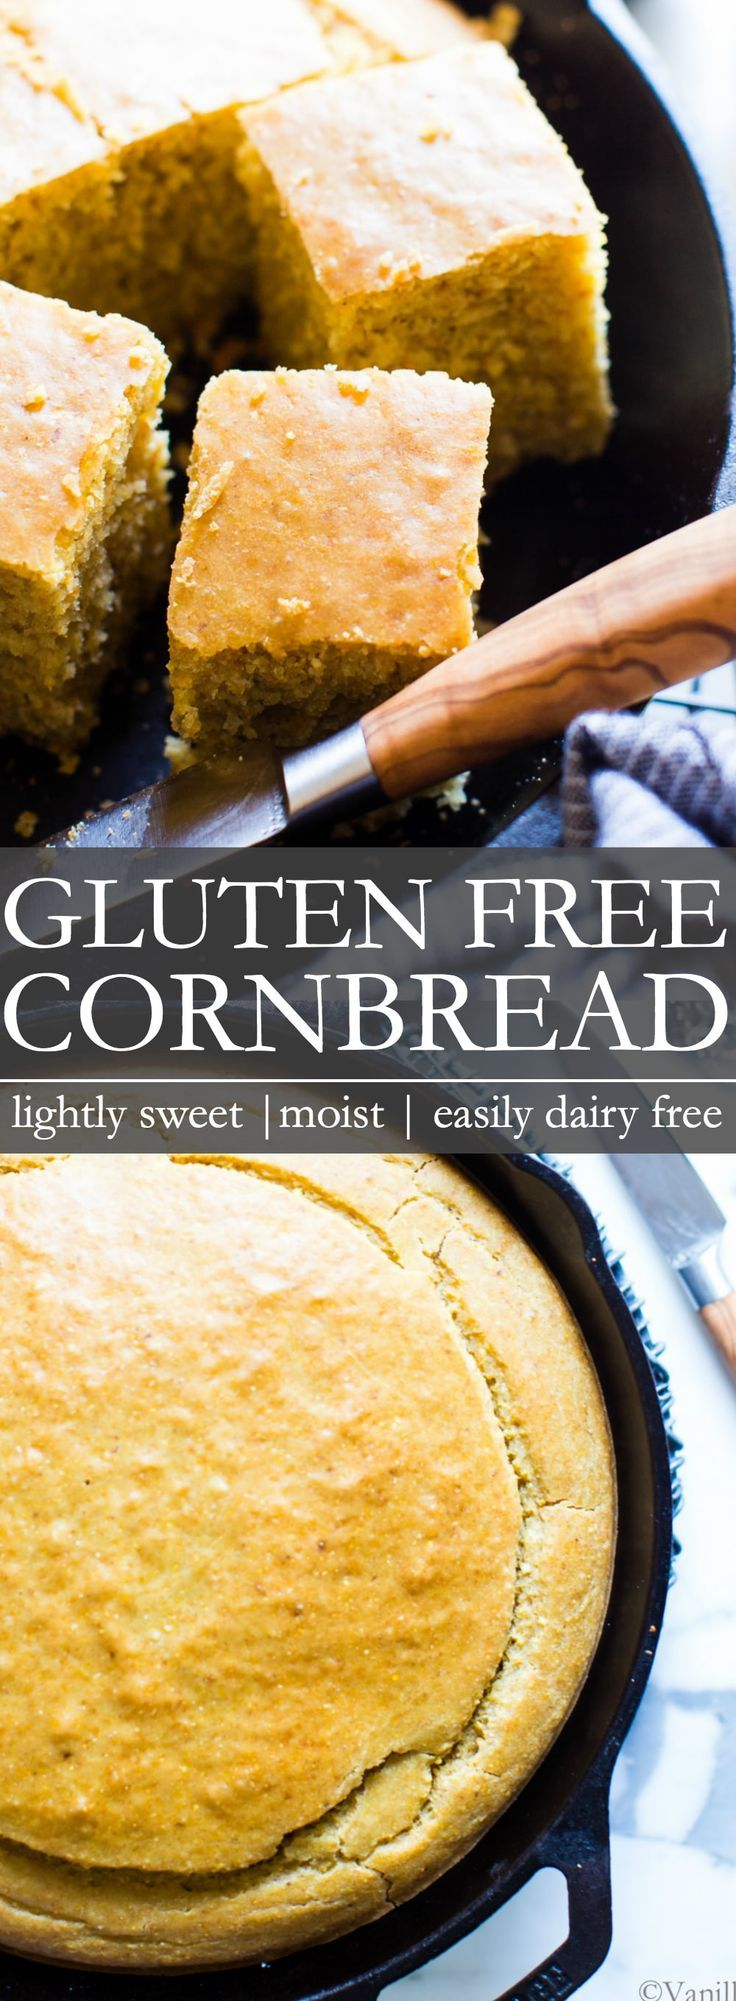 Gluten Free Cornbread Made With Diy Buttermilk And With A Dairy Free Option Gluten Free Cornbread Gluten Free Sweet Gluten Free Cornbread Recipe